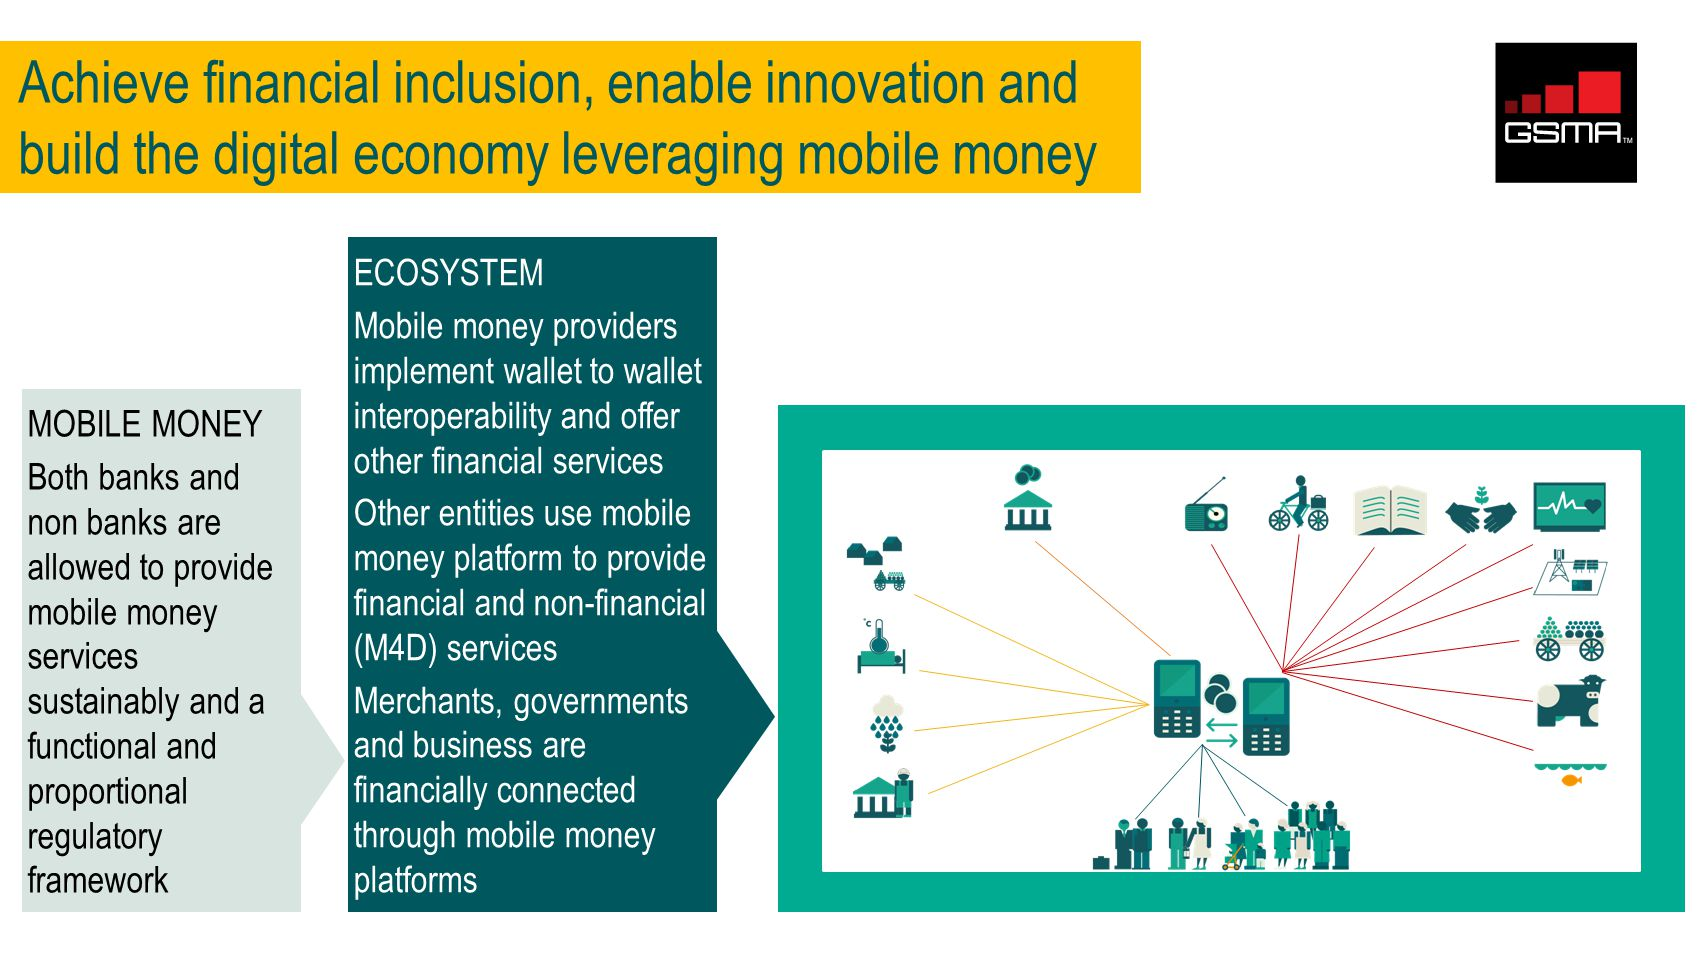 ECOSYSTEM Mobile money providers implement wallet to wallet interoperability and offer other financial services Other entities use mobile money platform to provide financial and non-financial (M4D) services Merchants, governments and business are financially connected through mobile money platforms Achieve financial inclusion, enable innovation and build the digital economy leveraging mobile money 1.7 b HAVE A MOBILE 1.7 b + MOBILE MONEY Both banks and non banks are allowed to provide mobile money services sustainably and a functional and proportional regulatory framework